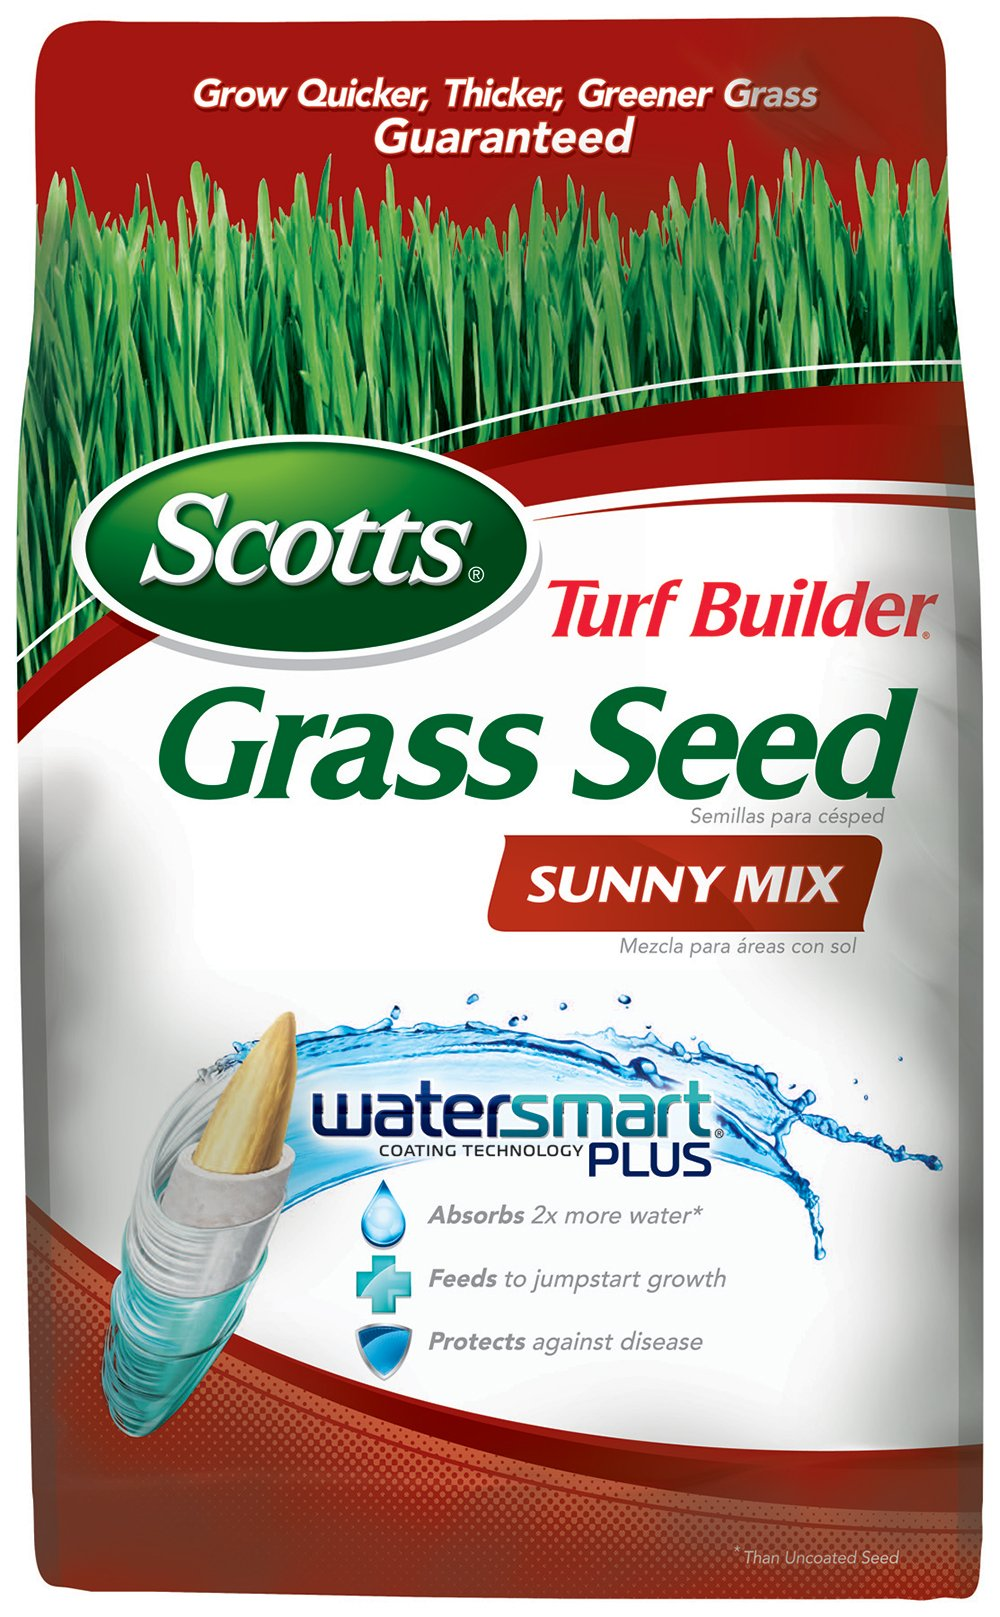 Scotts 18345 Turf Builder Sunny Grass Seed Mix (6 Pack), 3 lb